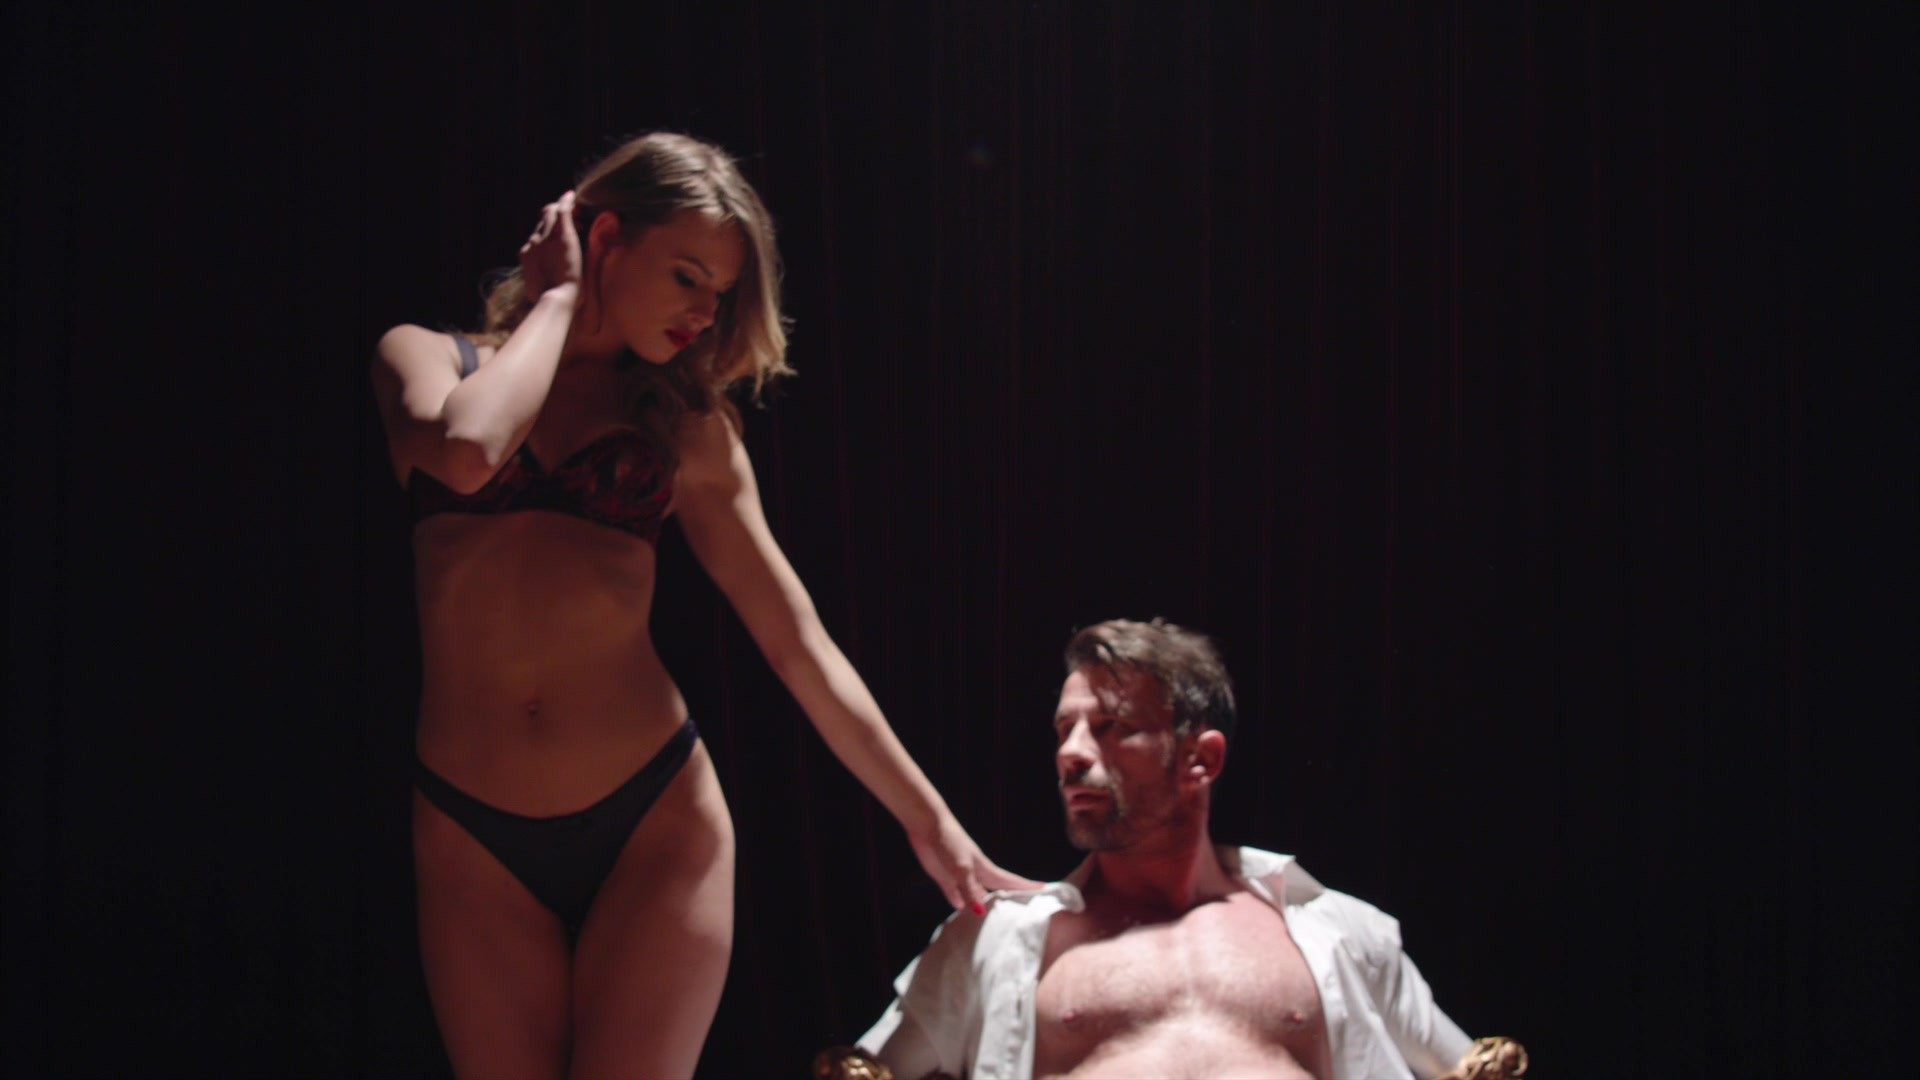 Scene with Kayden Kross and Jillian Janson - image 9 out of 20